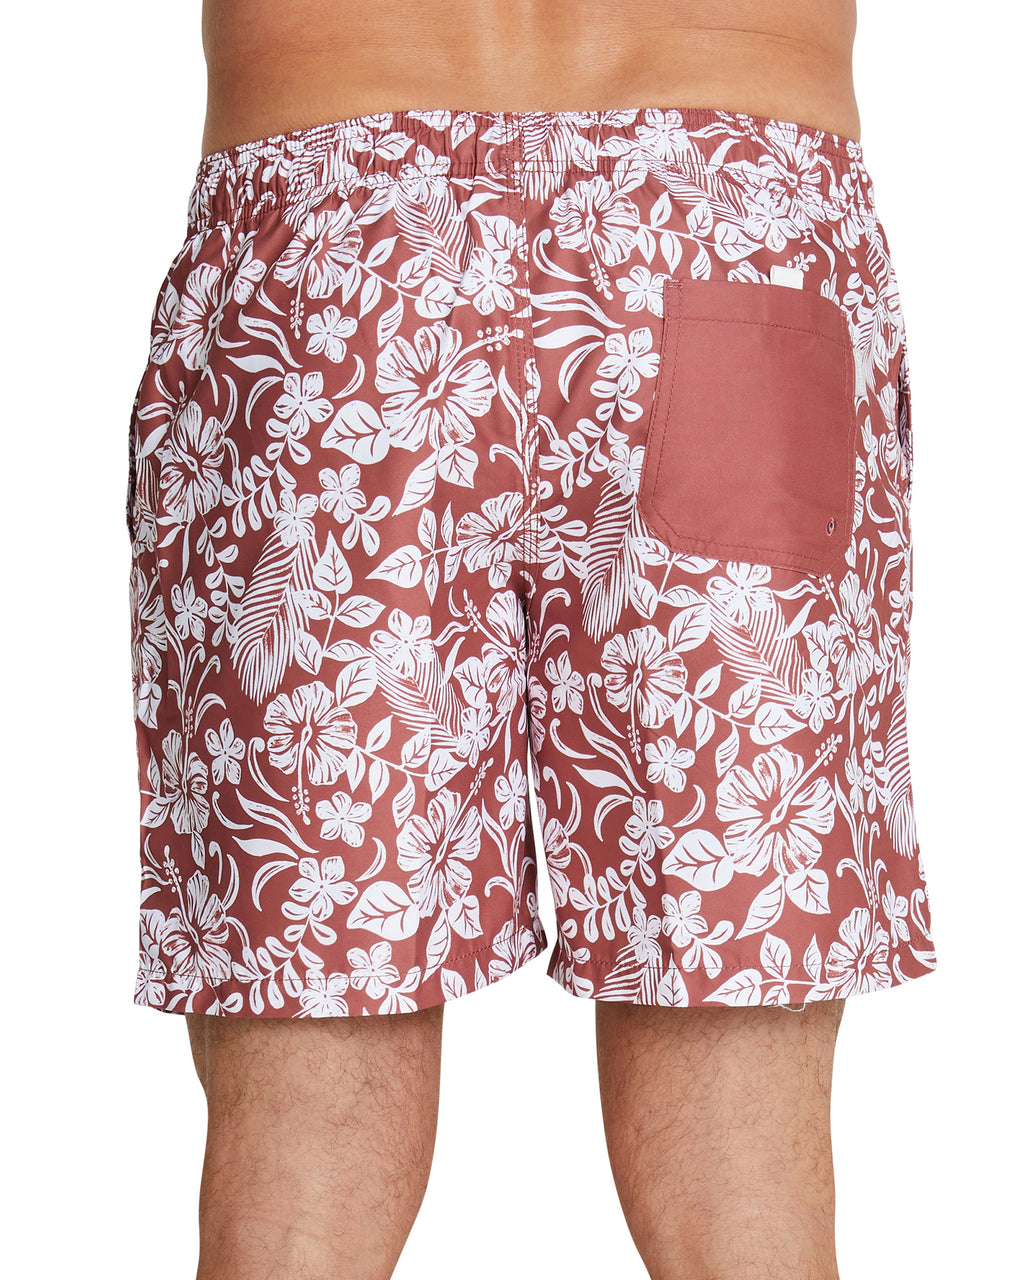 Swim Short - Sands - Earth - 17""